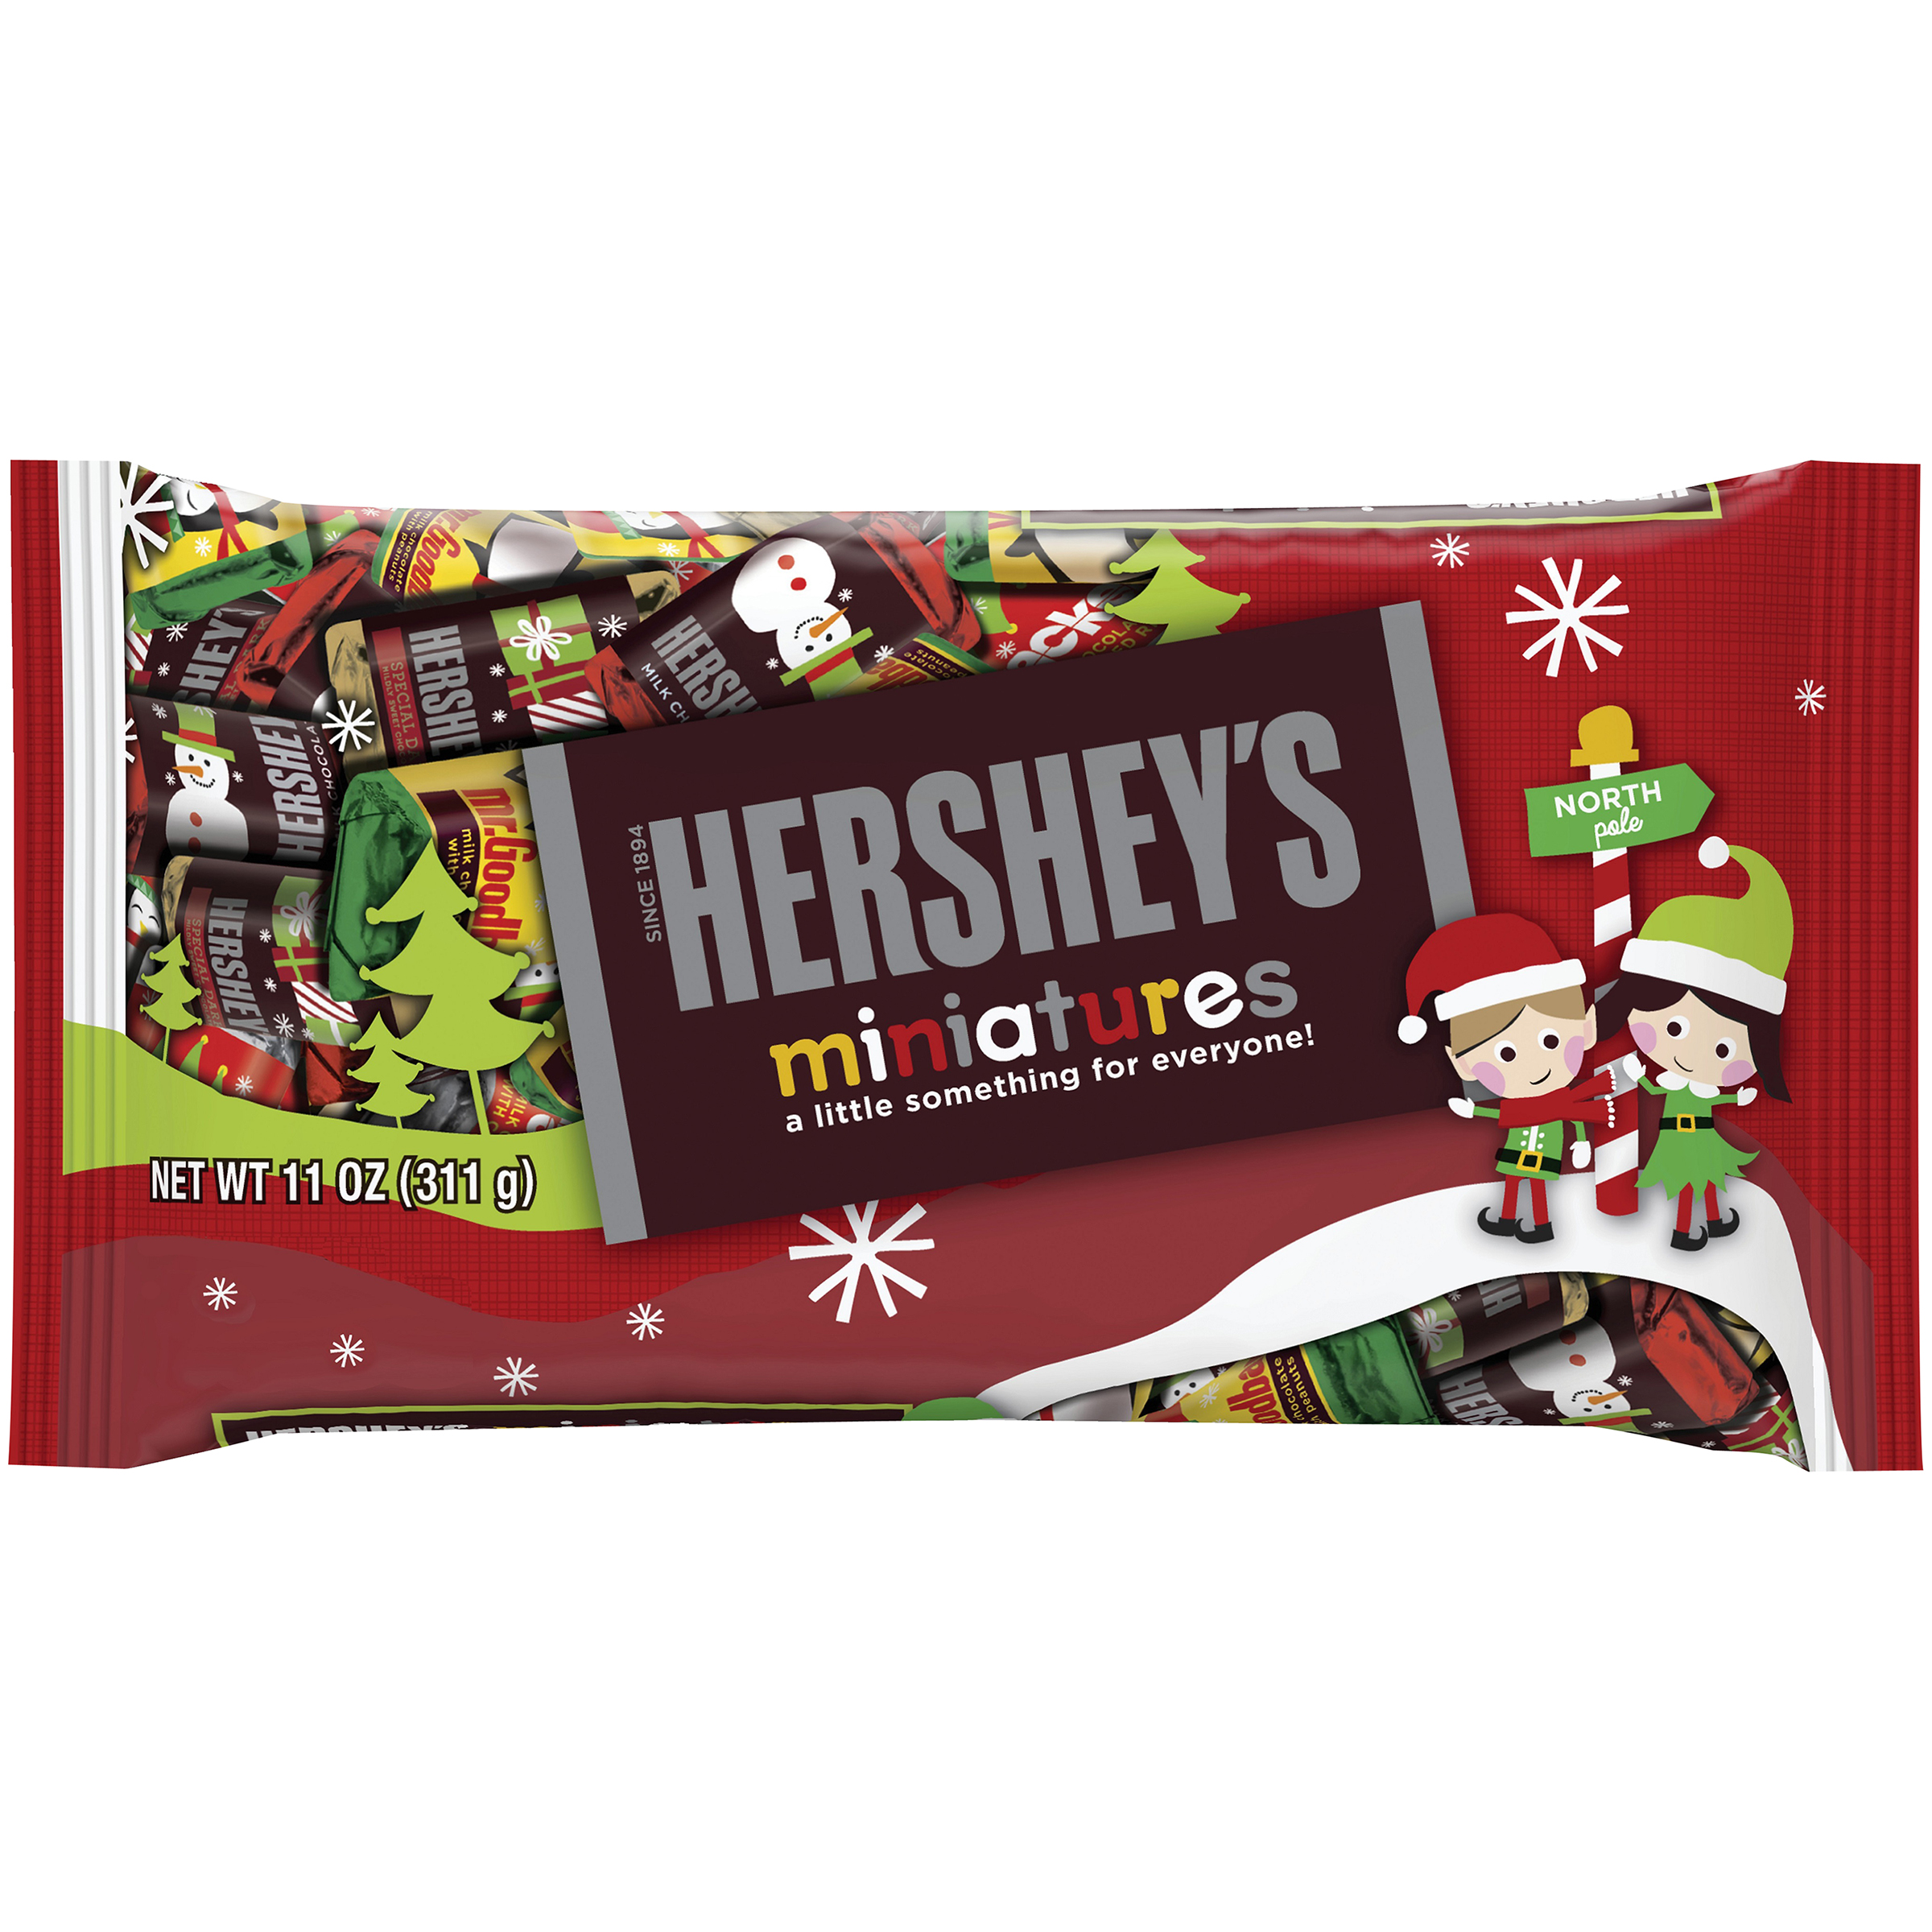 HERSHEY'S Holiday Miniatures Assortment, 11 oz